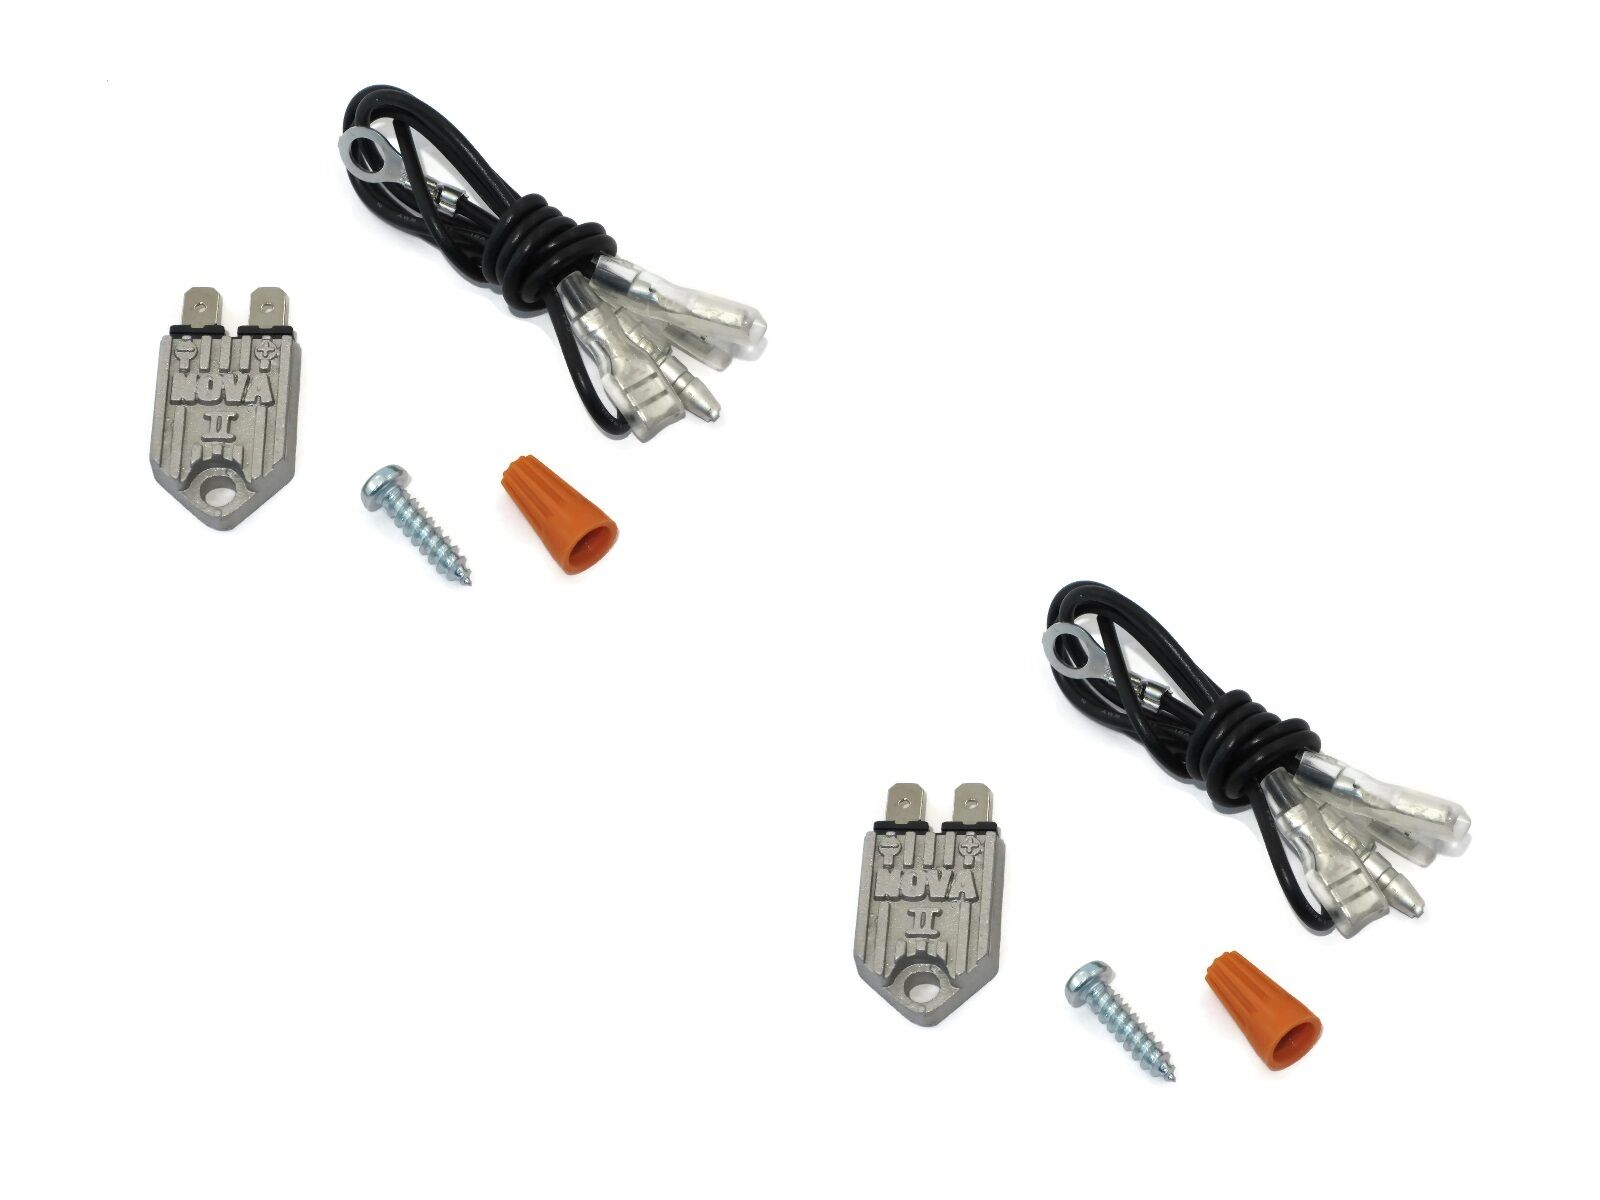 (2) ELECTRONIC TRANSISTORIZED IGNITION MODULE NOVA II